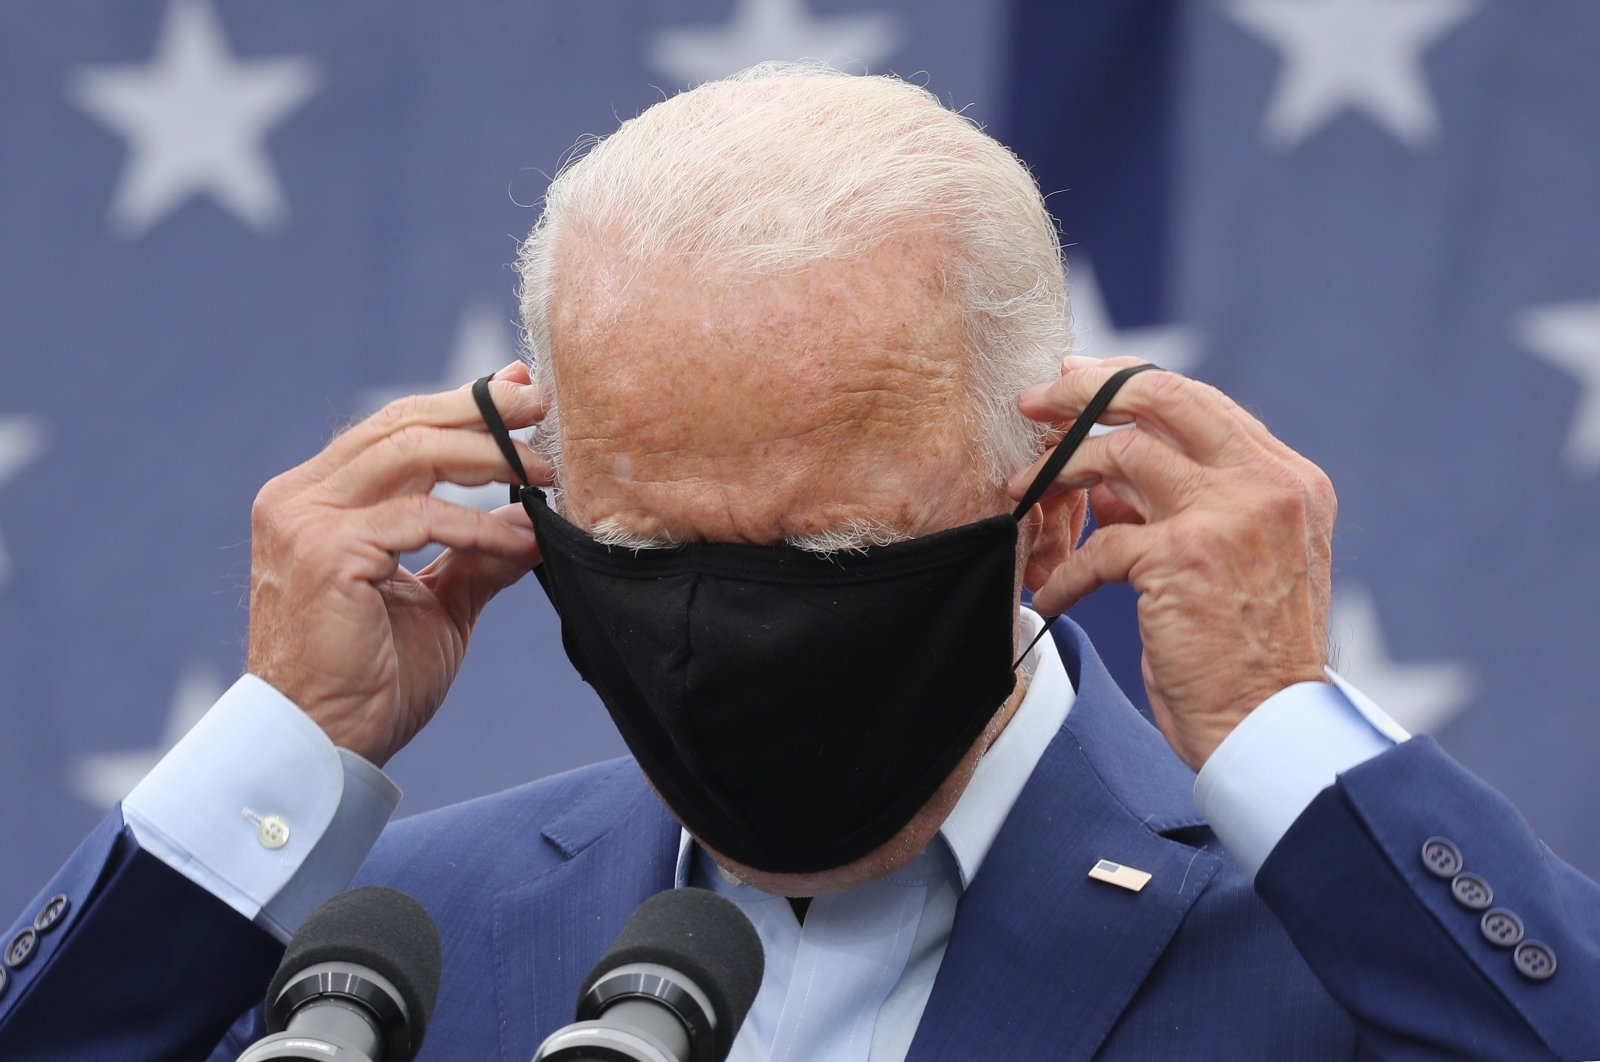 Democratic presidential nominee and former Vice President Joe Biden replaces the mask he wears to reduce the risk posed by the coronavirus after addressing union members outside the United Auto Workers Region 1 offices in Warren, Michigan, U.S., Sept. 9, 2020. (AFP Photo)